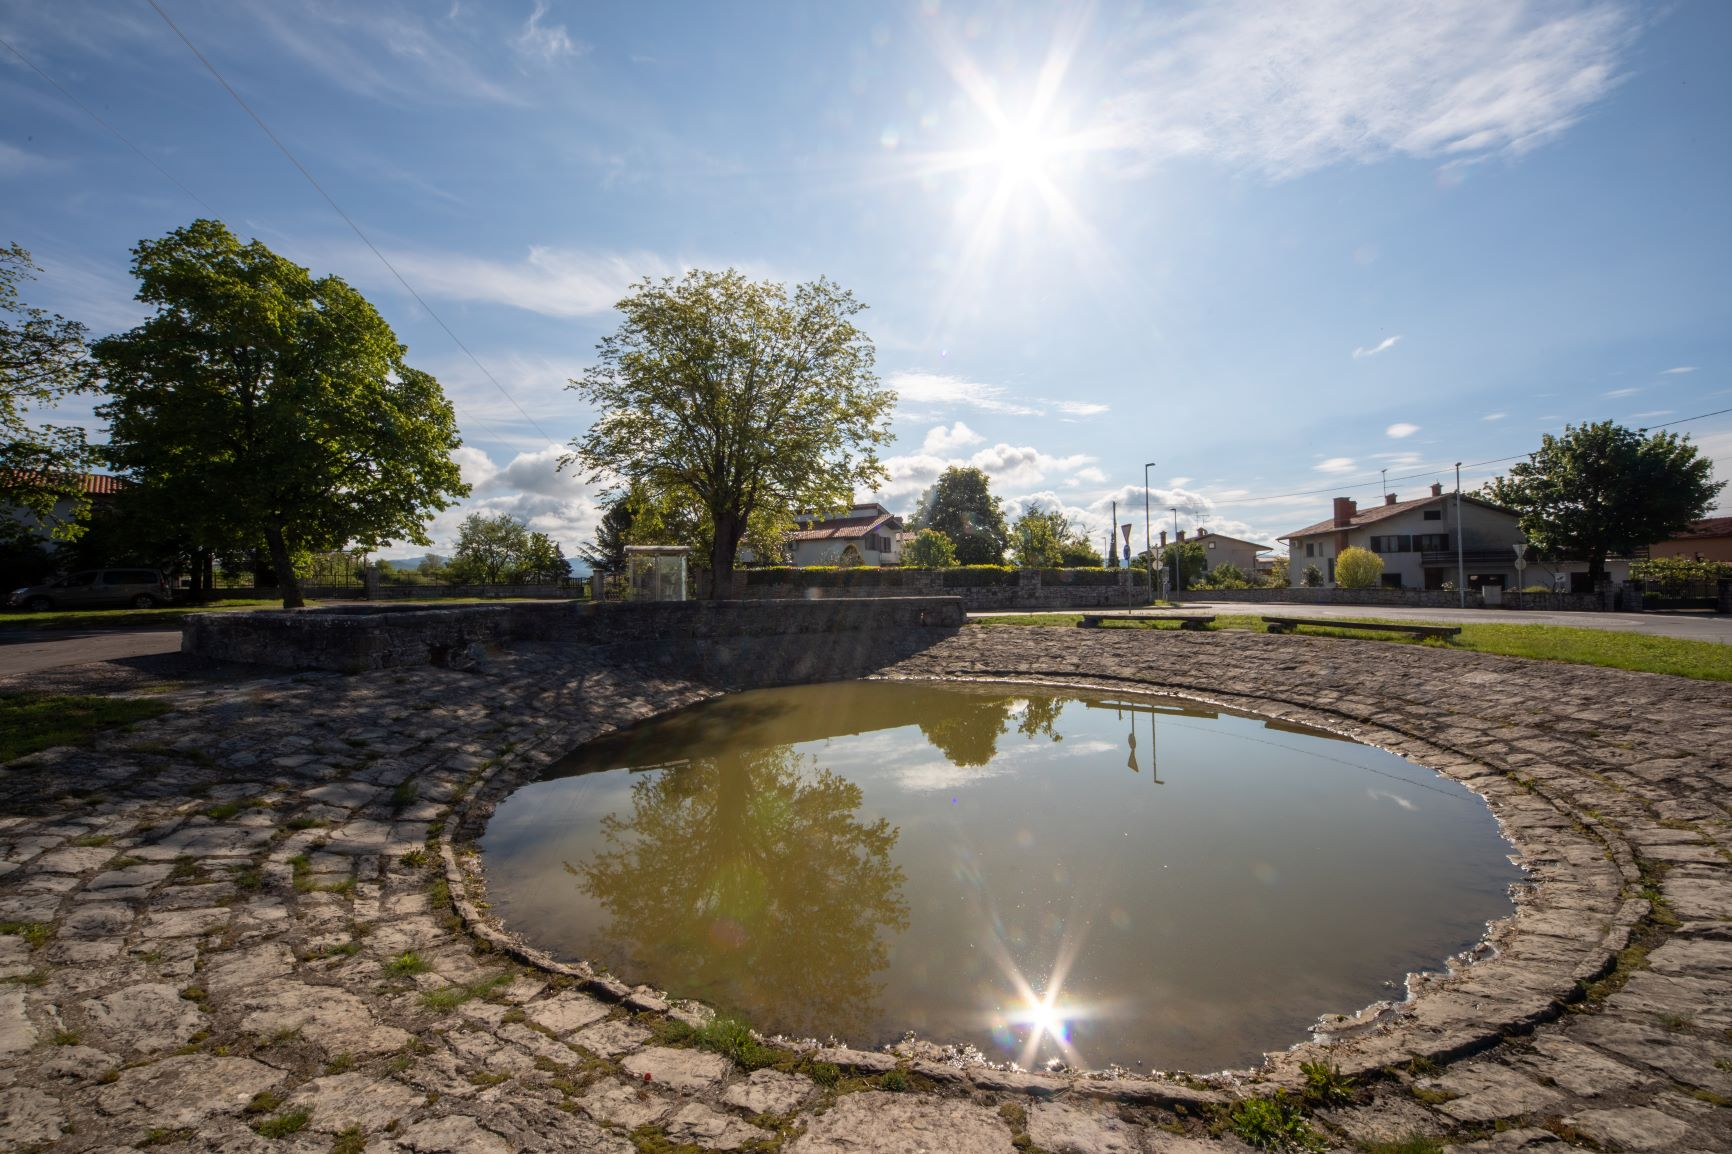 Water in the Karst: village ponds, drinking troughs, water holes and wells